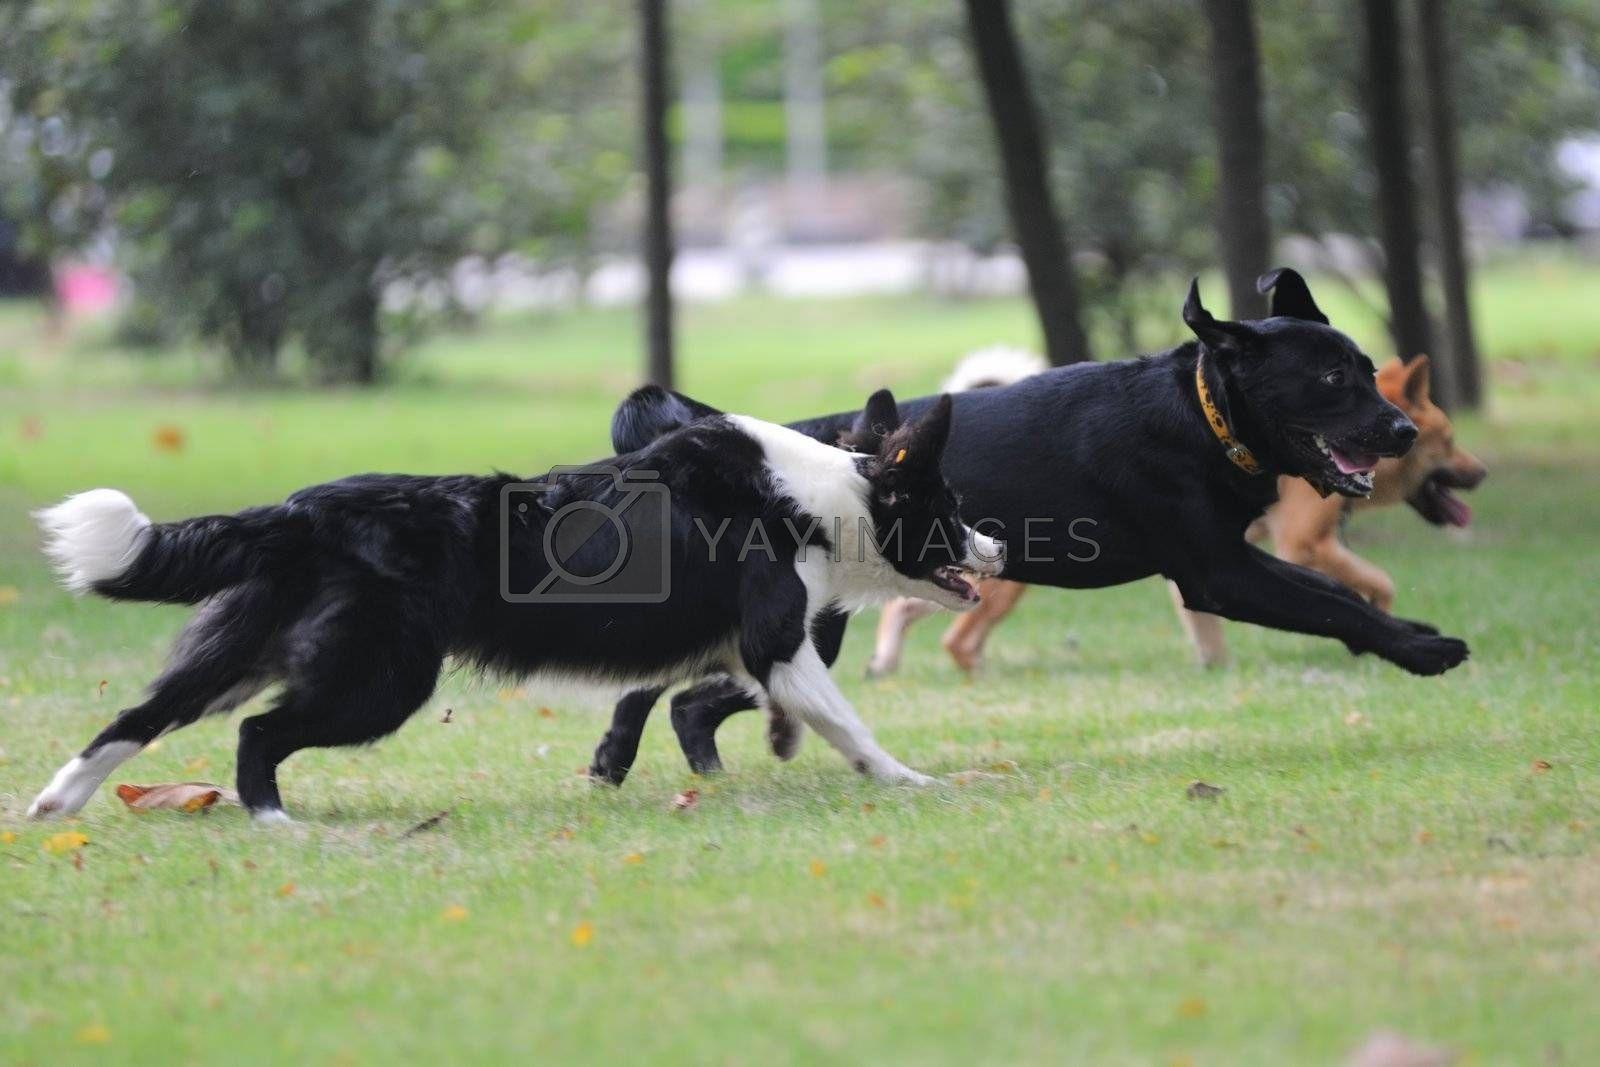 Dogs running together on the lawn